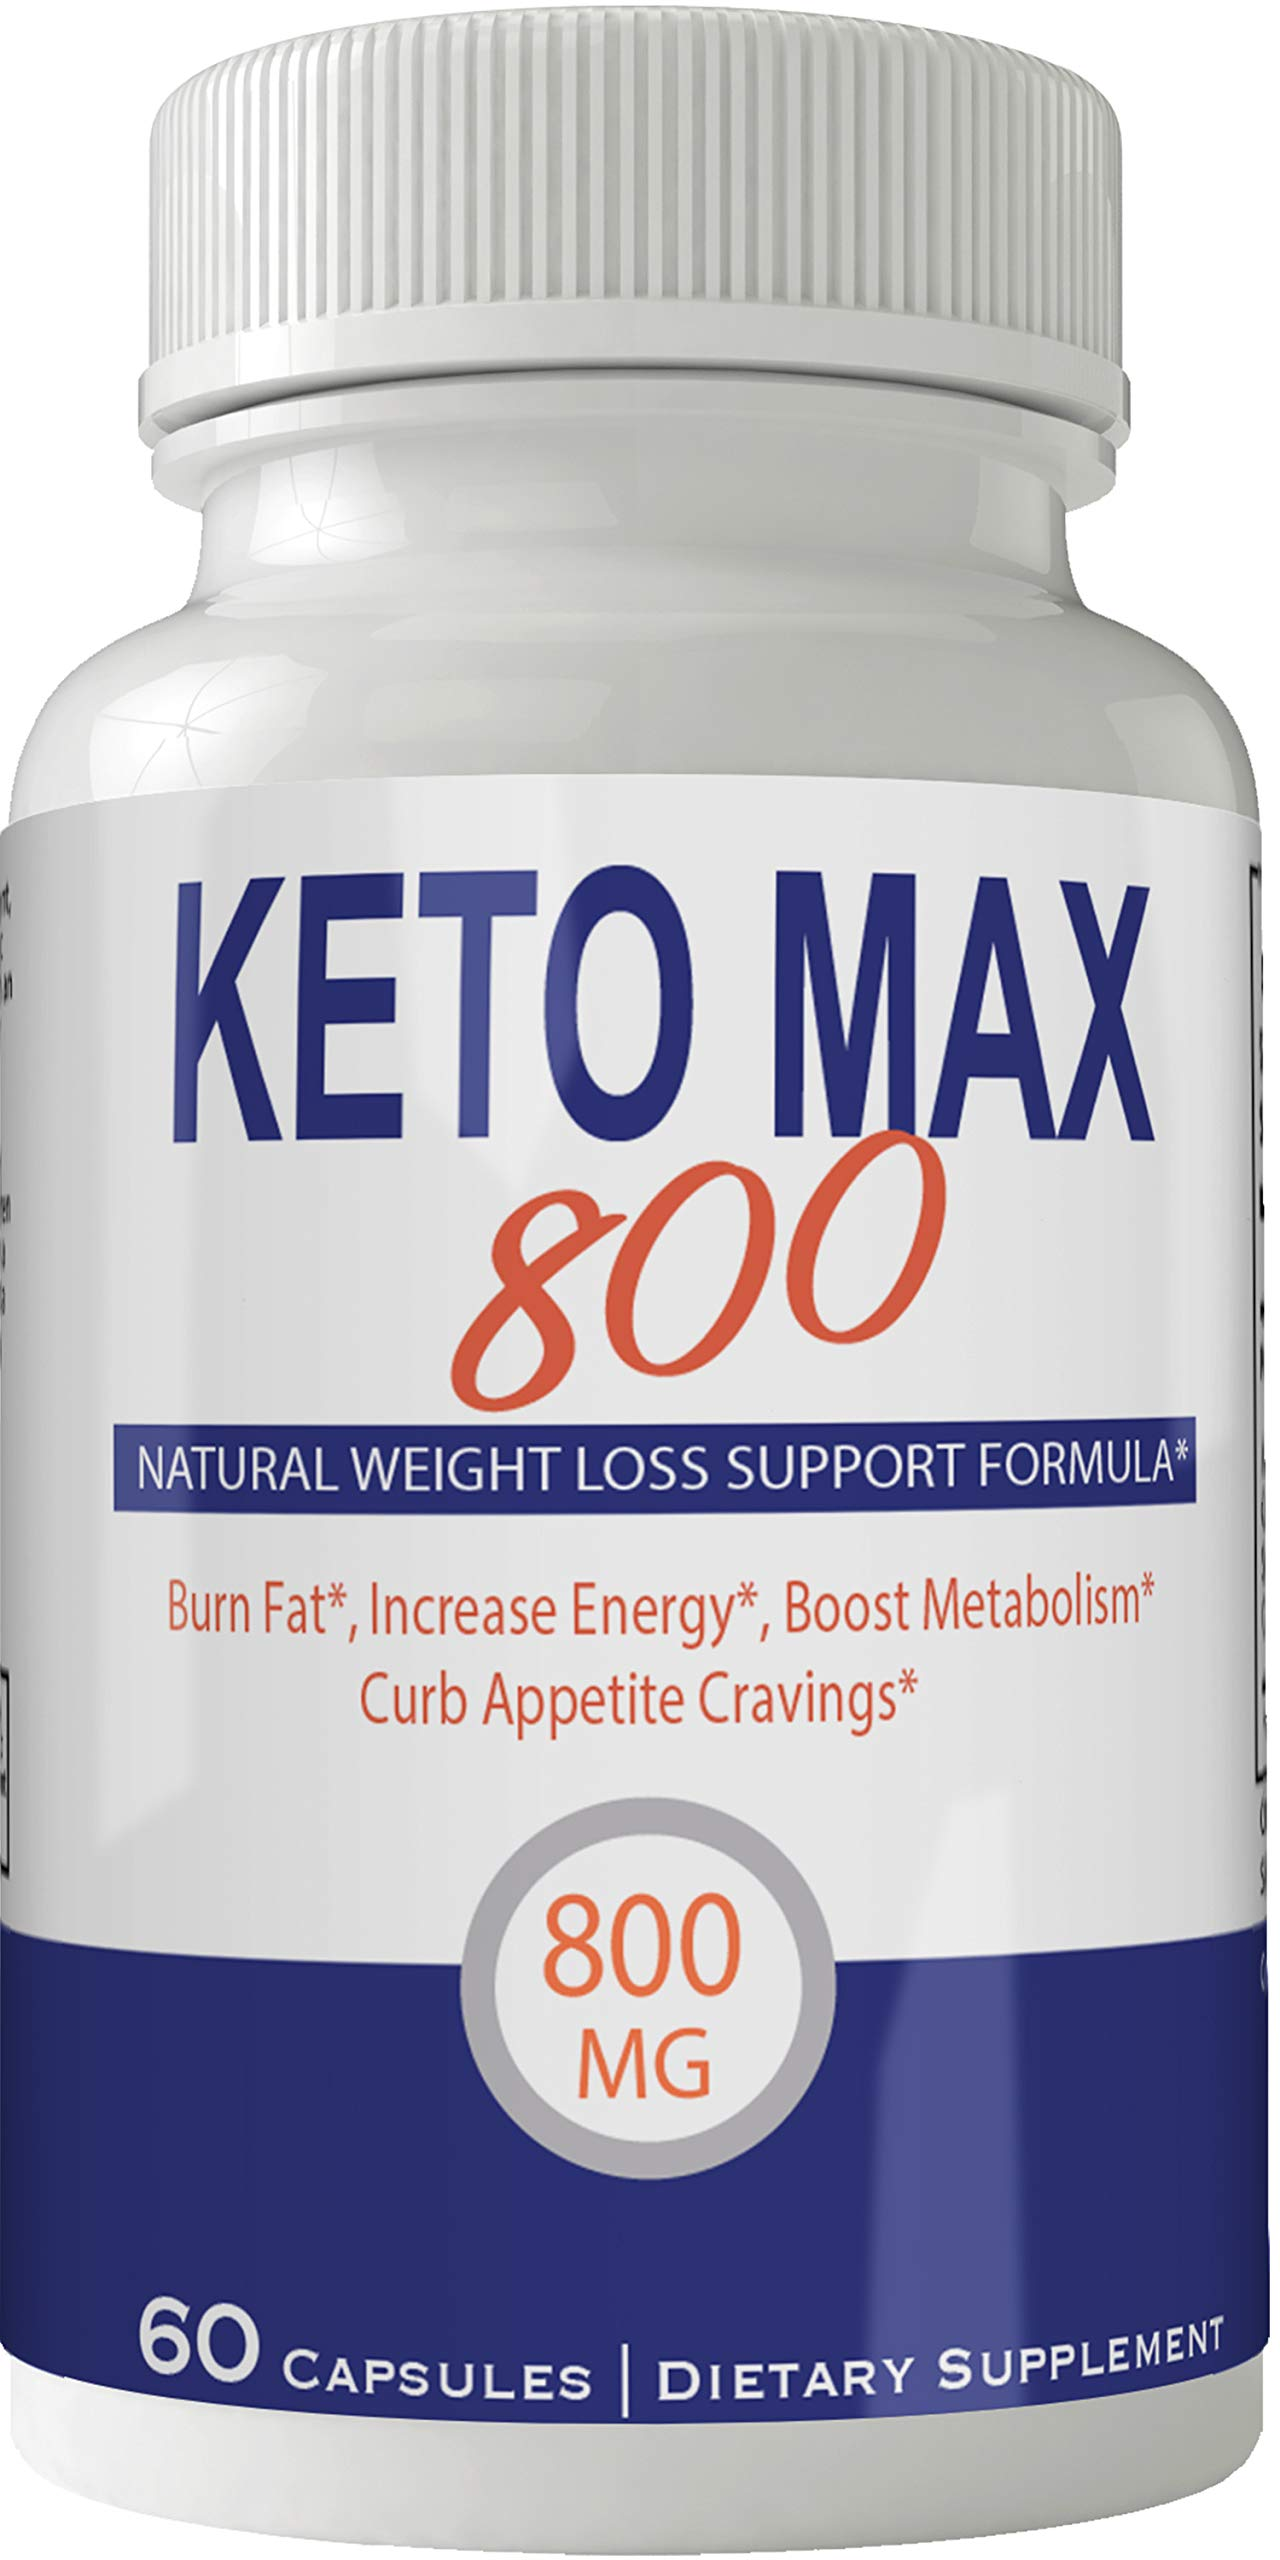 Keto Max 800 Pills Advance Weight Loss Supplement, Appetite Suppressant with Ultra Advanced Natural Ketogenic Capsules, 800 mg Fast Formula with BHB Salts Ketone Diet Boost Metabolism and Pulls Focus